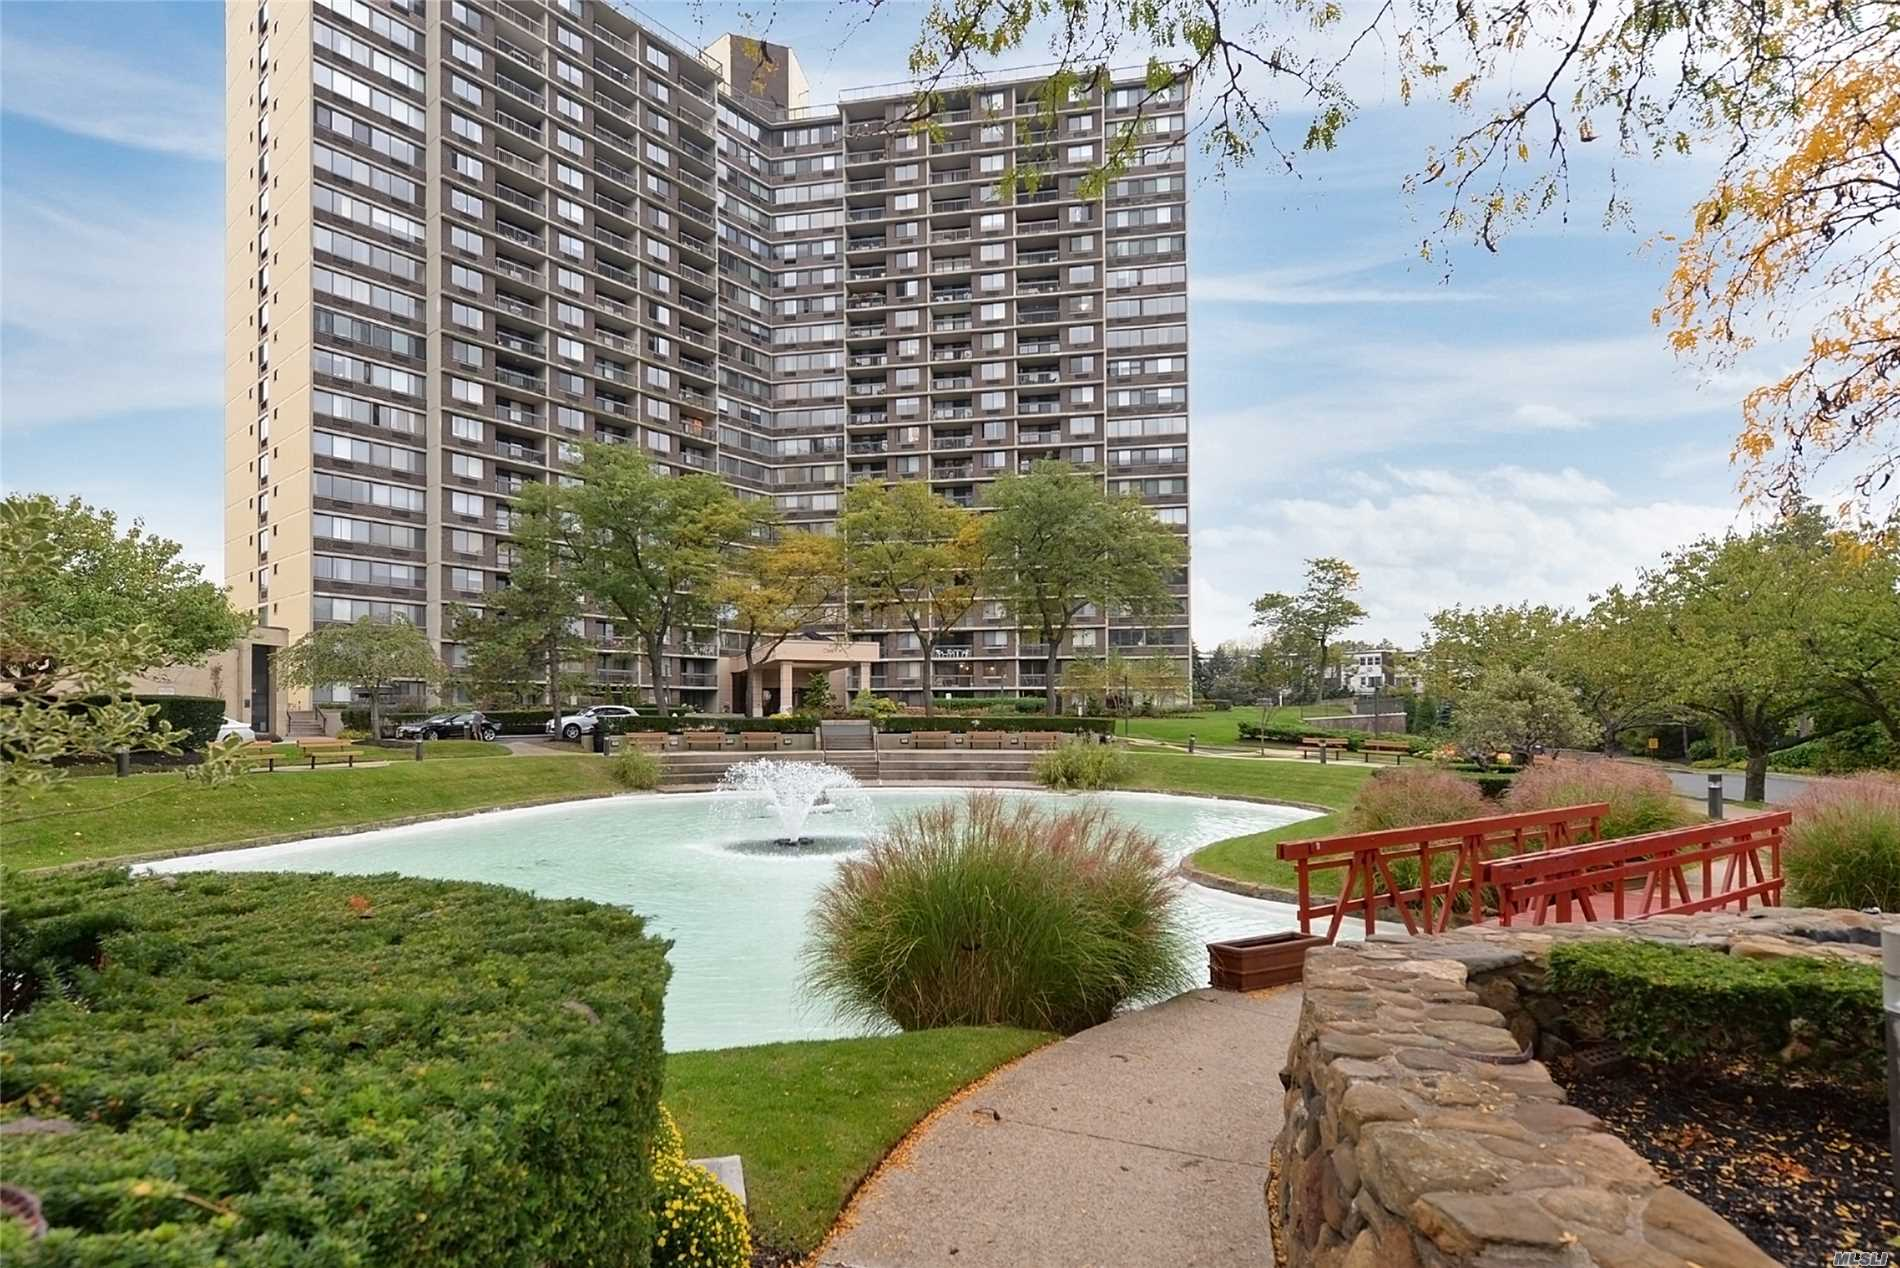 Fabulous Bay Club Gated Community. Security. 24 Hr. Doorman / Concierge. Beautiful Renovated Best Deal On A Large 1 Bedroom Unit. Year Round Swim & Fitness Center, Indoor Parking (Extra Fees). Free Tennis Club. New Children's Playground. New On Premises Restaurant. Underground Stores.Best Location. Near Everything.